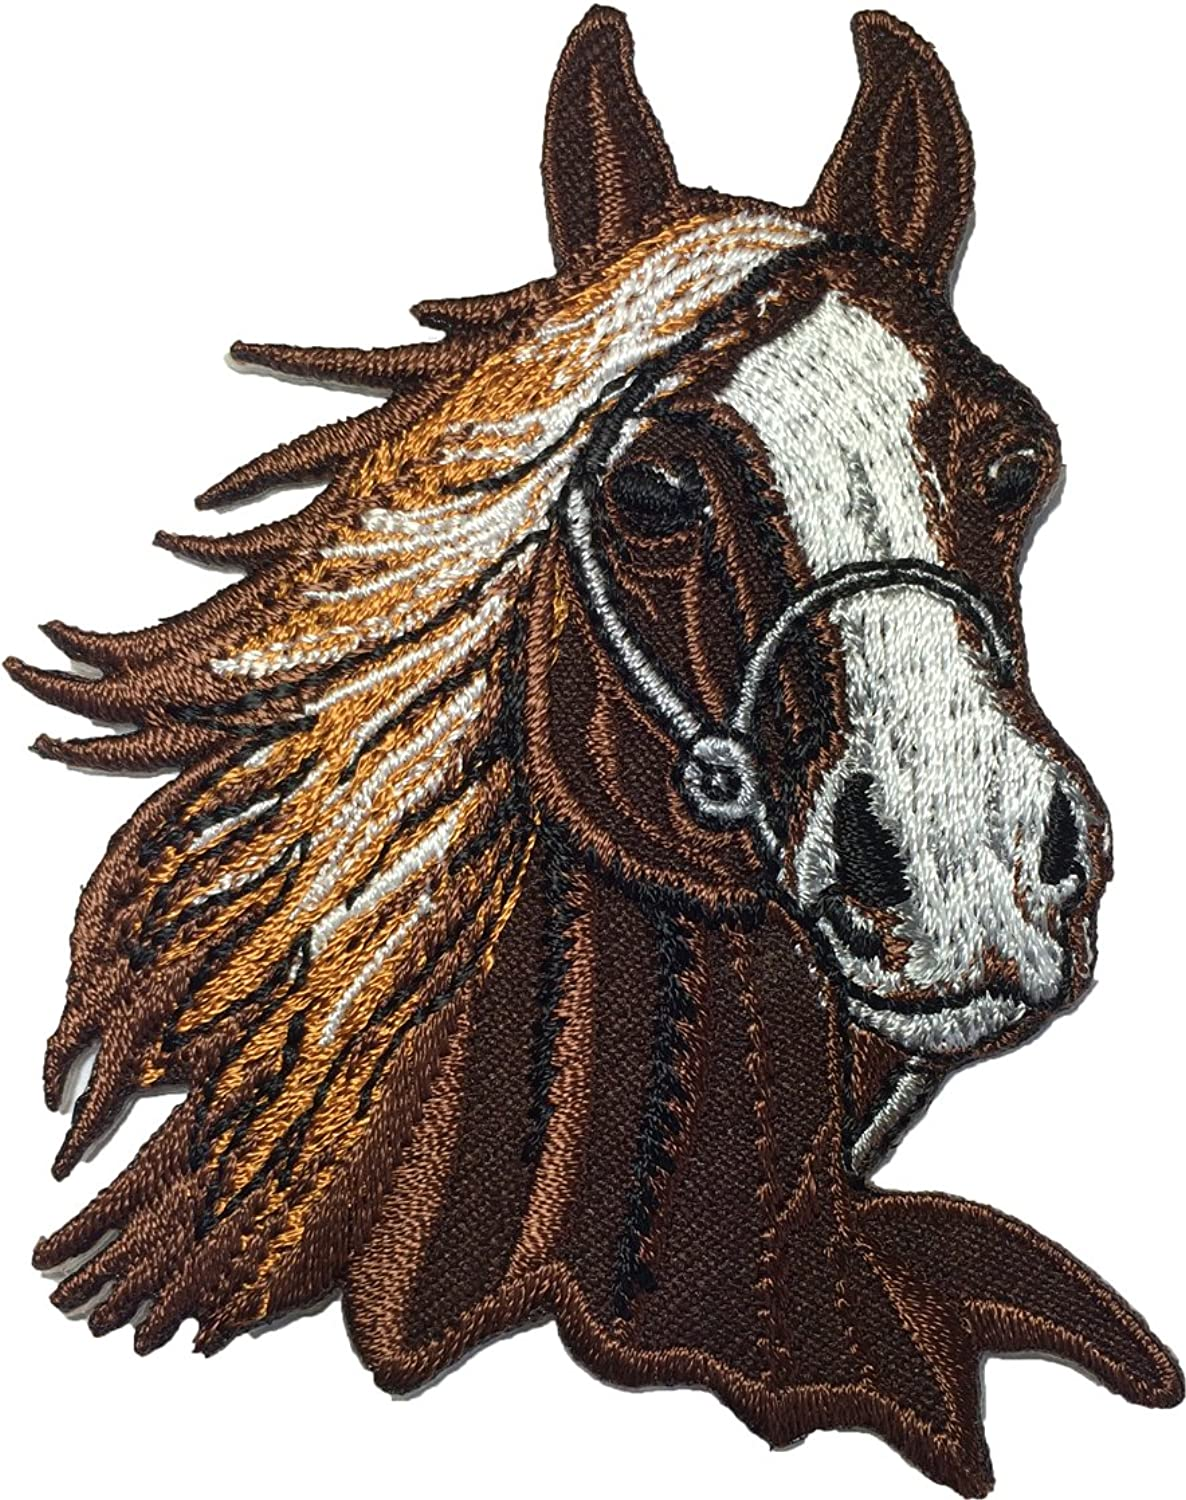 Brown Horse size 7.5 x 8.5cm. Jacket Vest shirt hat blanket backpack T shirt Patches Embroidered Appliques Symbol Badge Cloth Sign Costume Gift